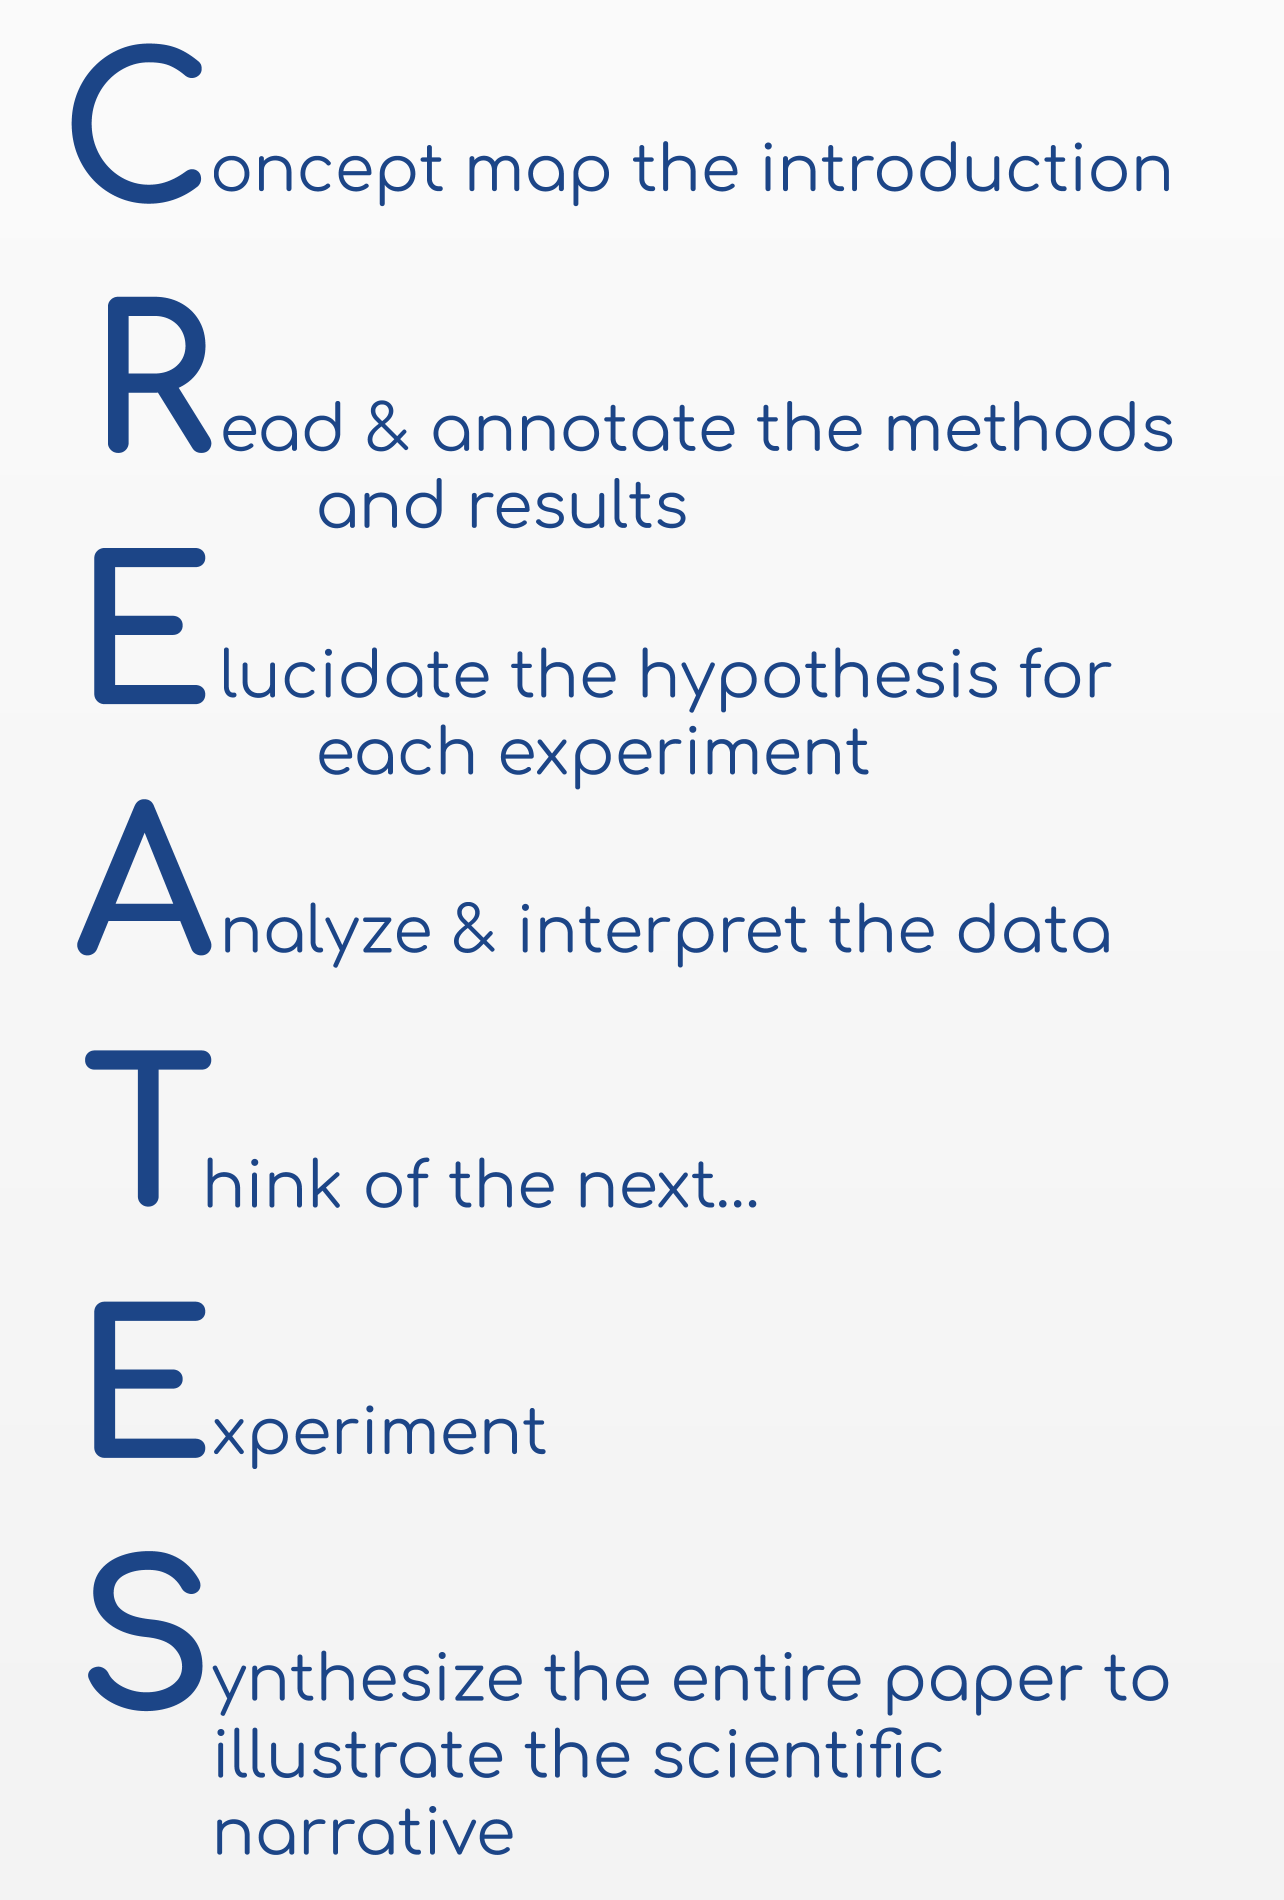 CREATES acronym. Concept map the introduction. Read and annotate the methods and results. Elucidate the hypothesis for each experiment. Analyze and interpret the data. Think of the next Experiment. Synthesize the entire paper to illustrate the scientific narrative.